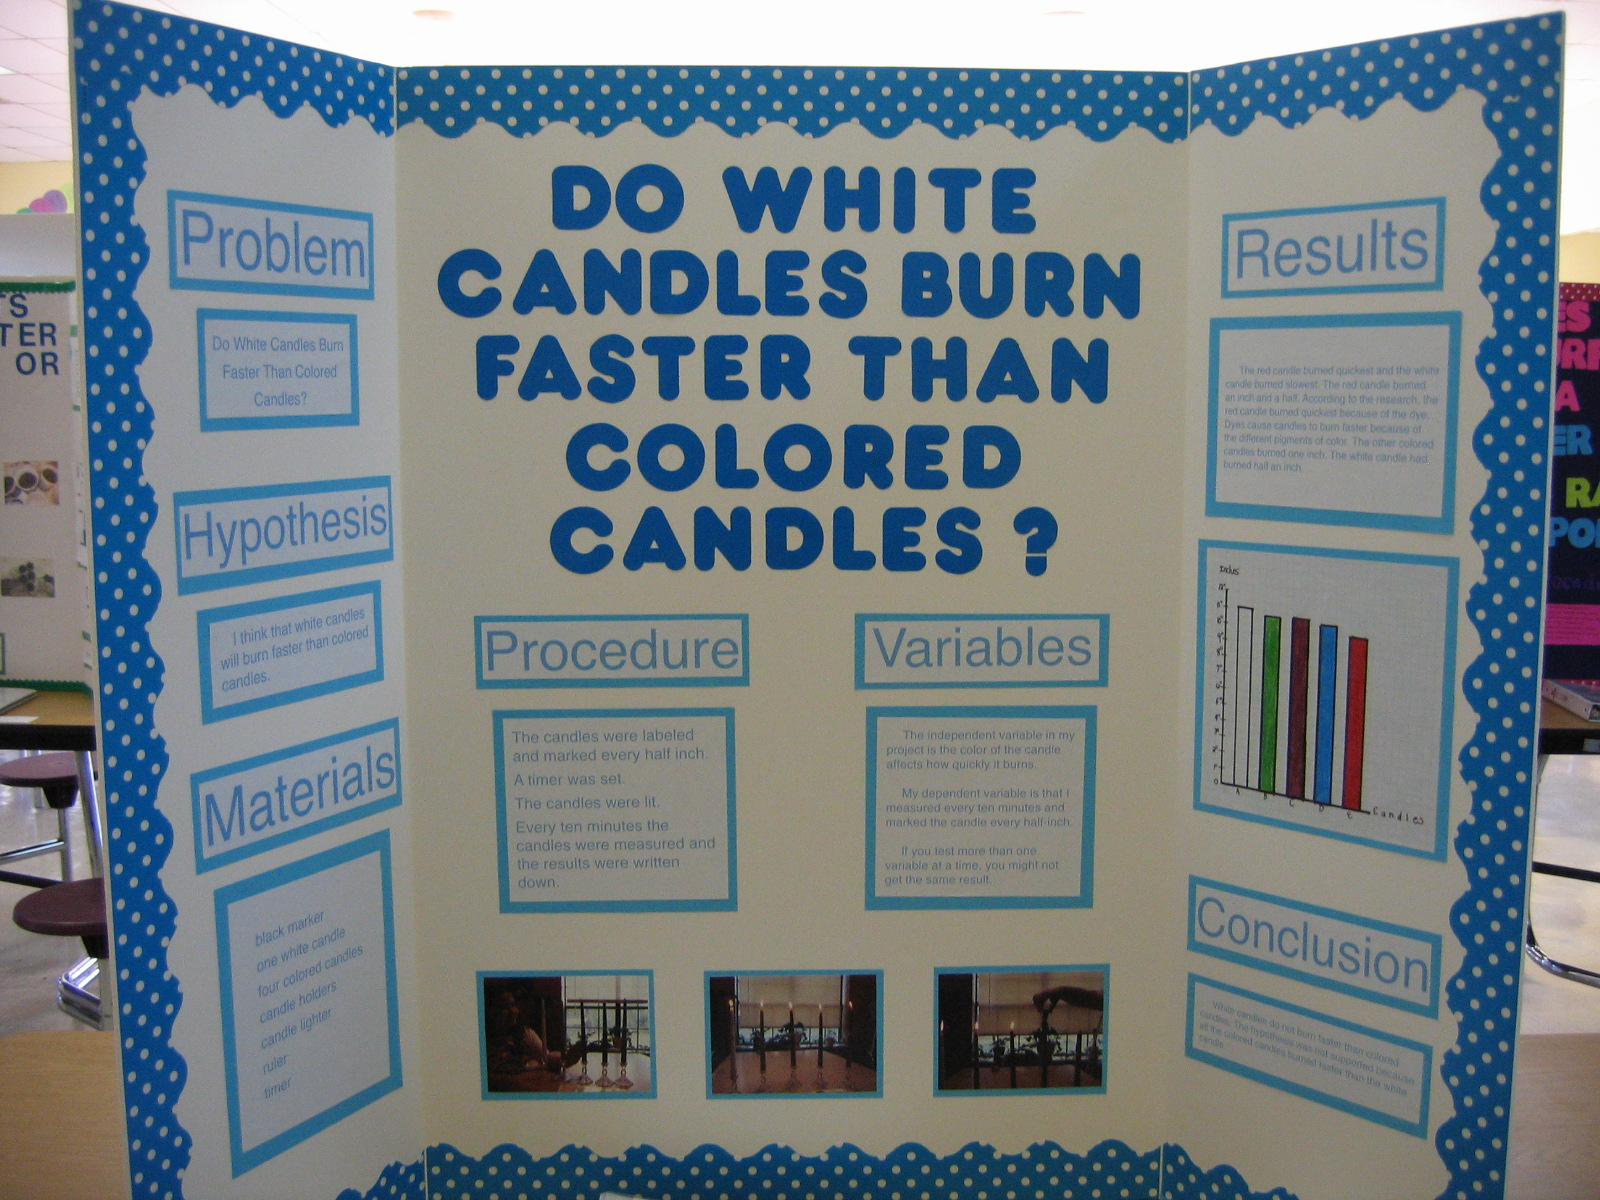 Do White Candles Burn Faster Than Colored Candles?